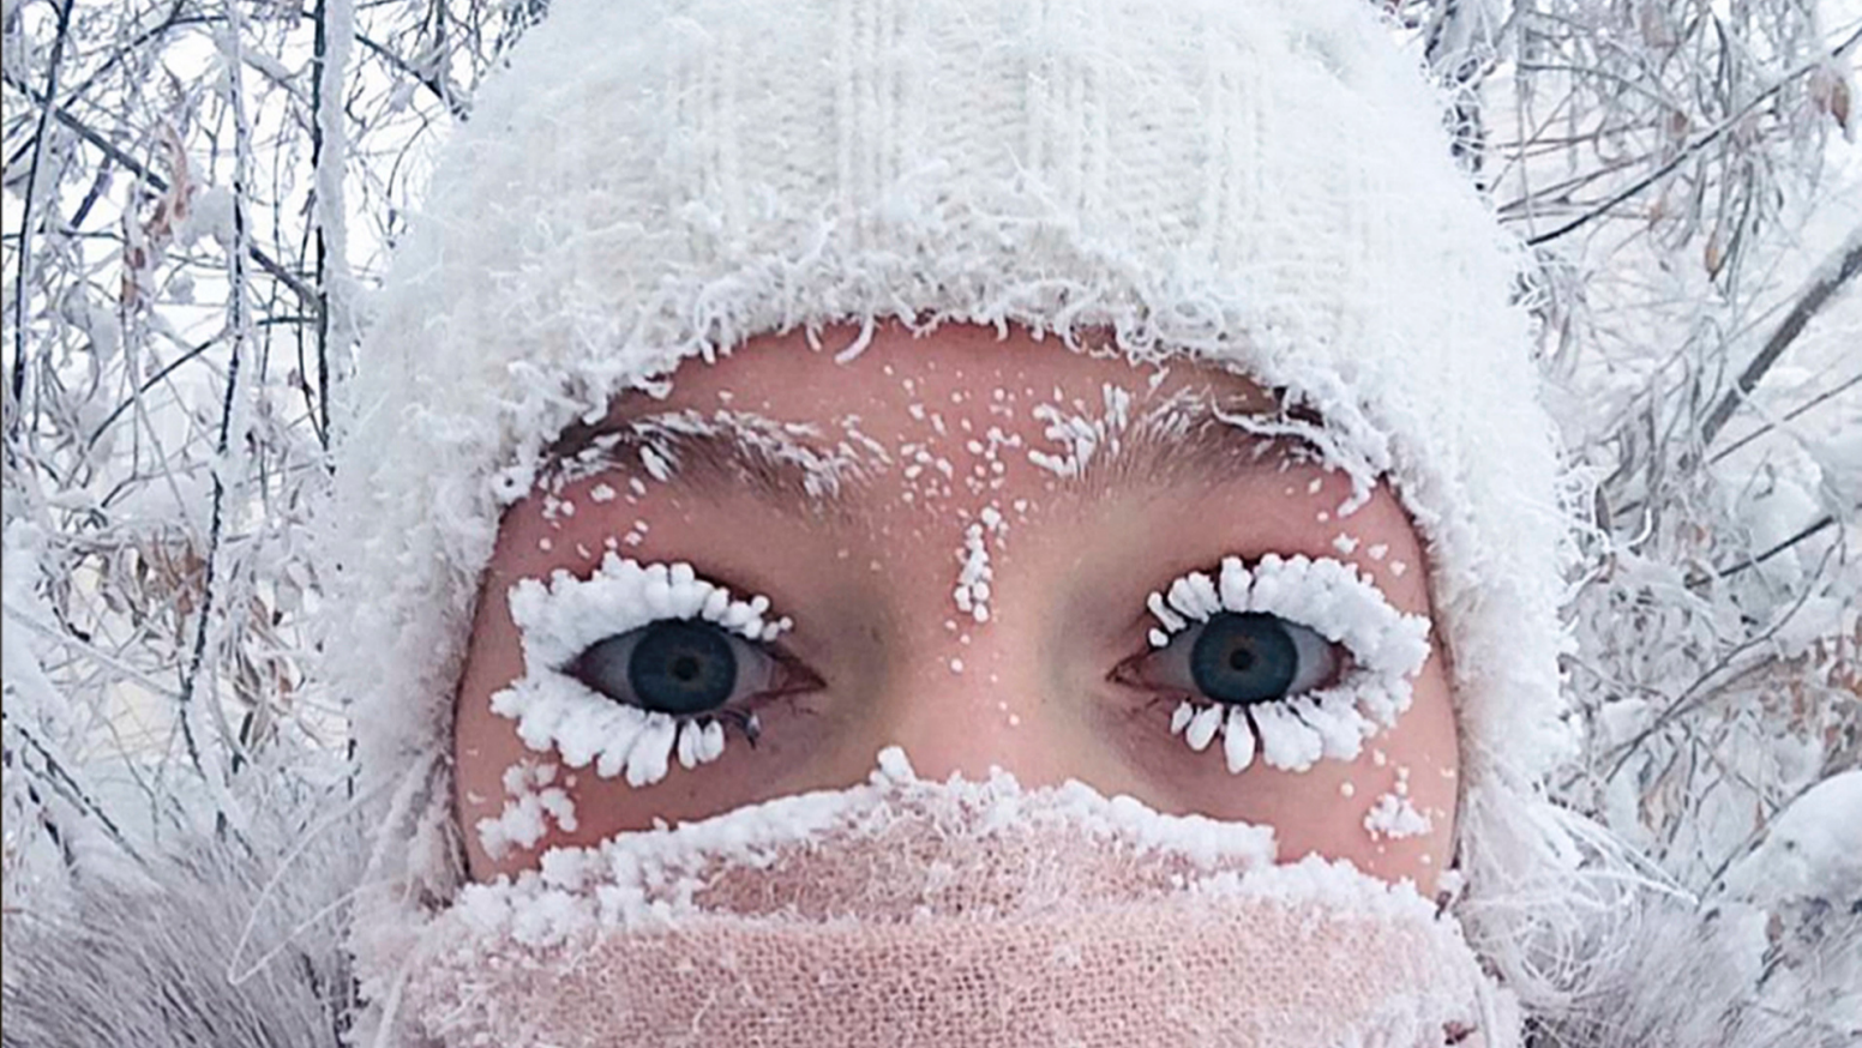 Even The Eyelashes Freeze Russia Sees Minus 88 6 Degrees F